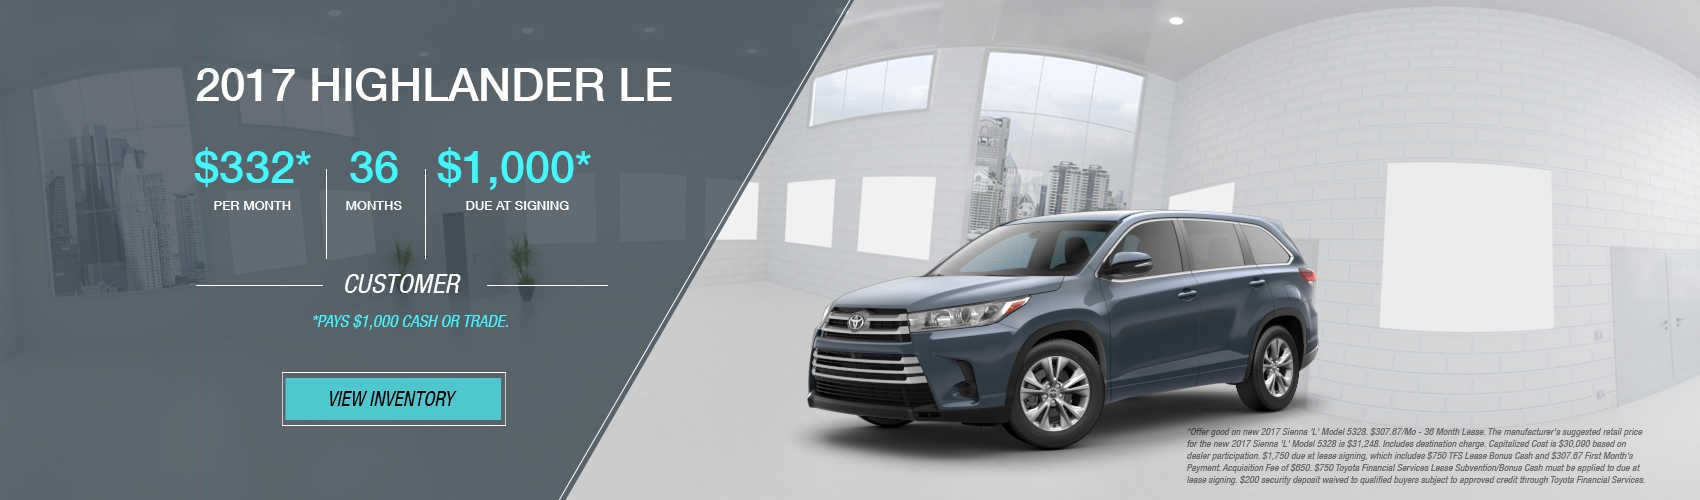 2017 Highlander LE at Beaverton Toyota